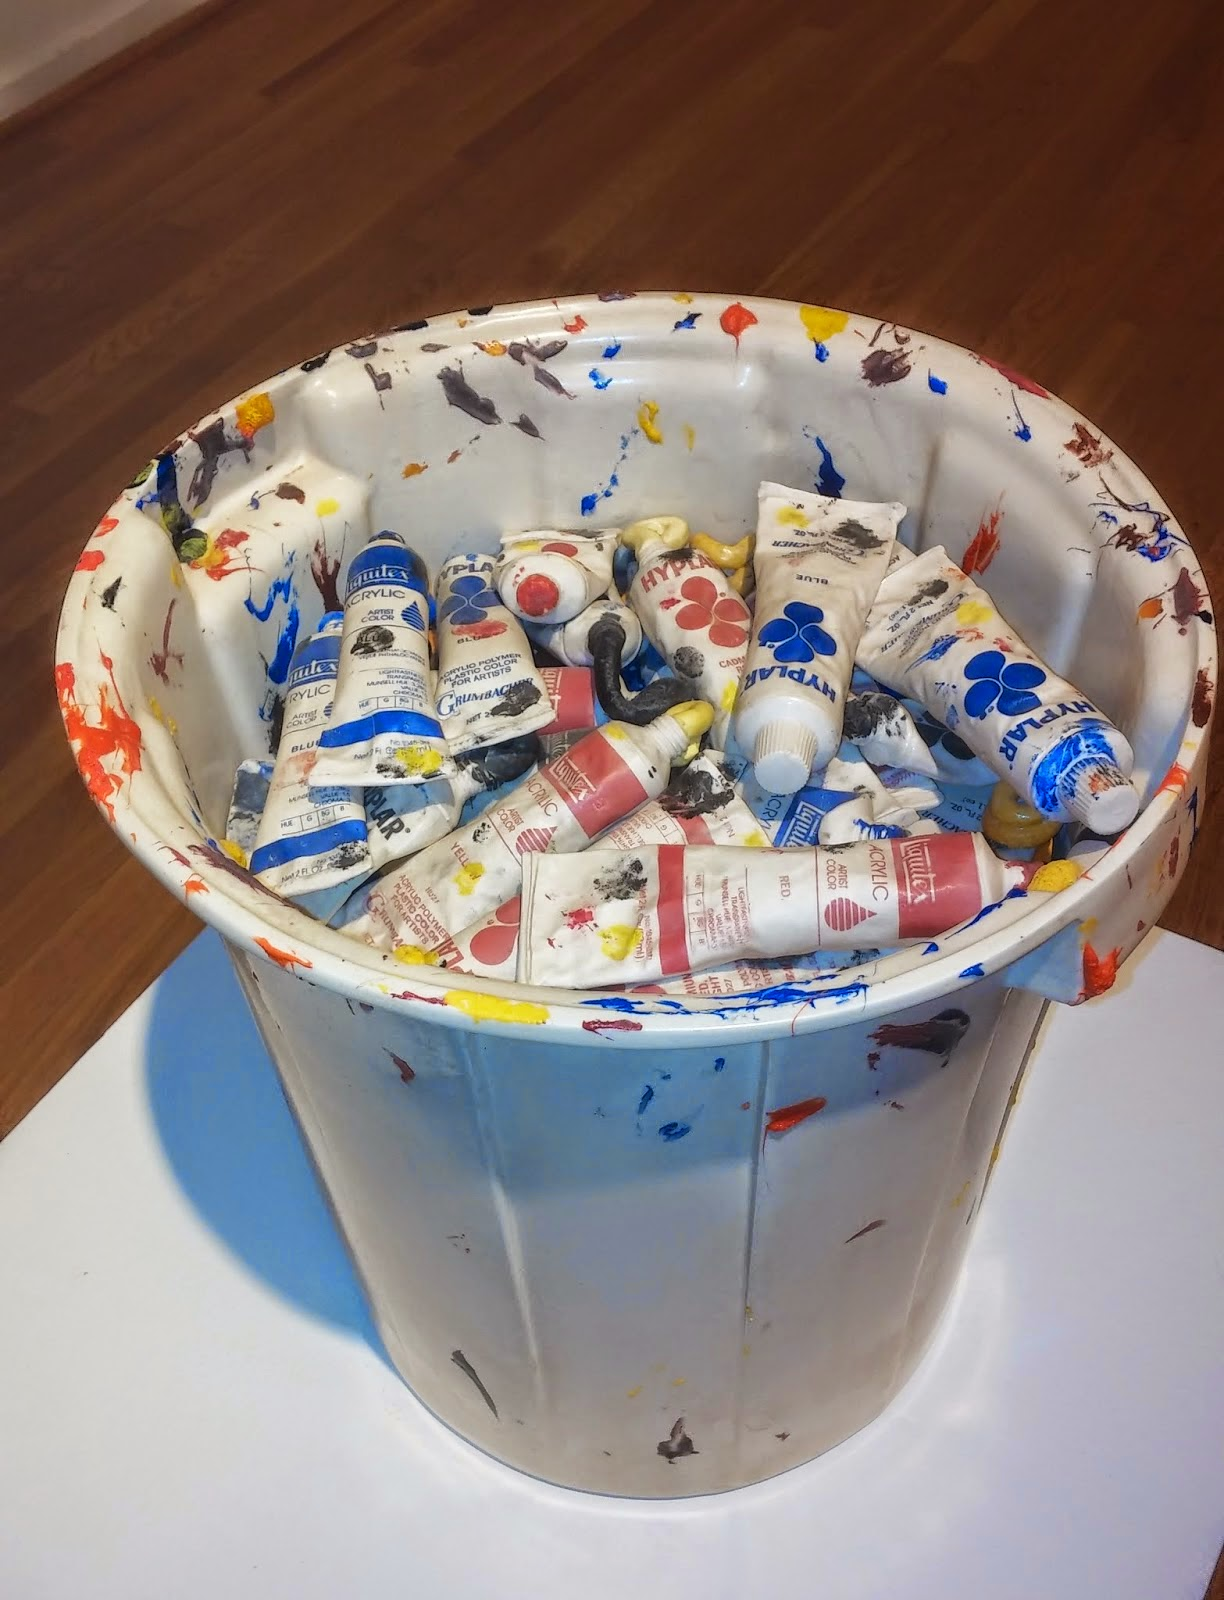 06-Giving-up-on-Painting-Victor-Spinski-Clay-Sculptures-replicating-objects-from-Daily-Life-www-designstack-co